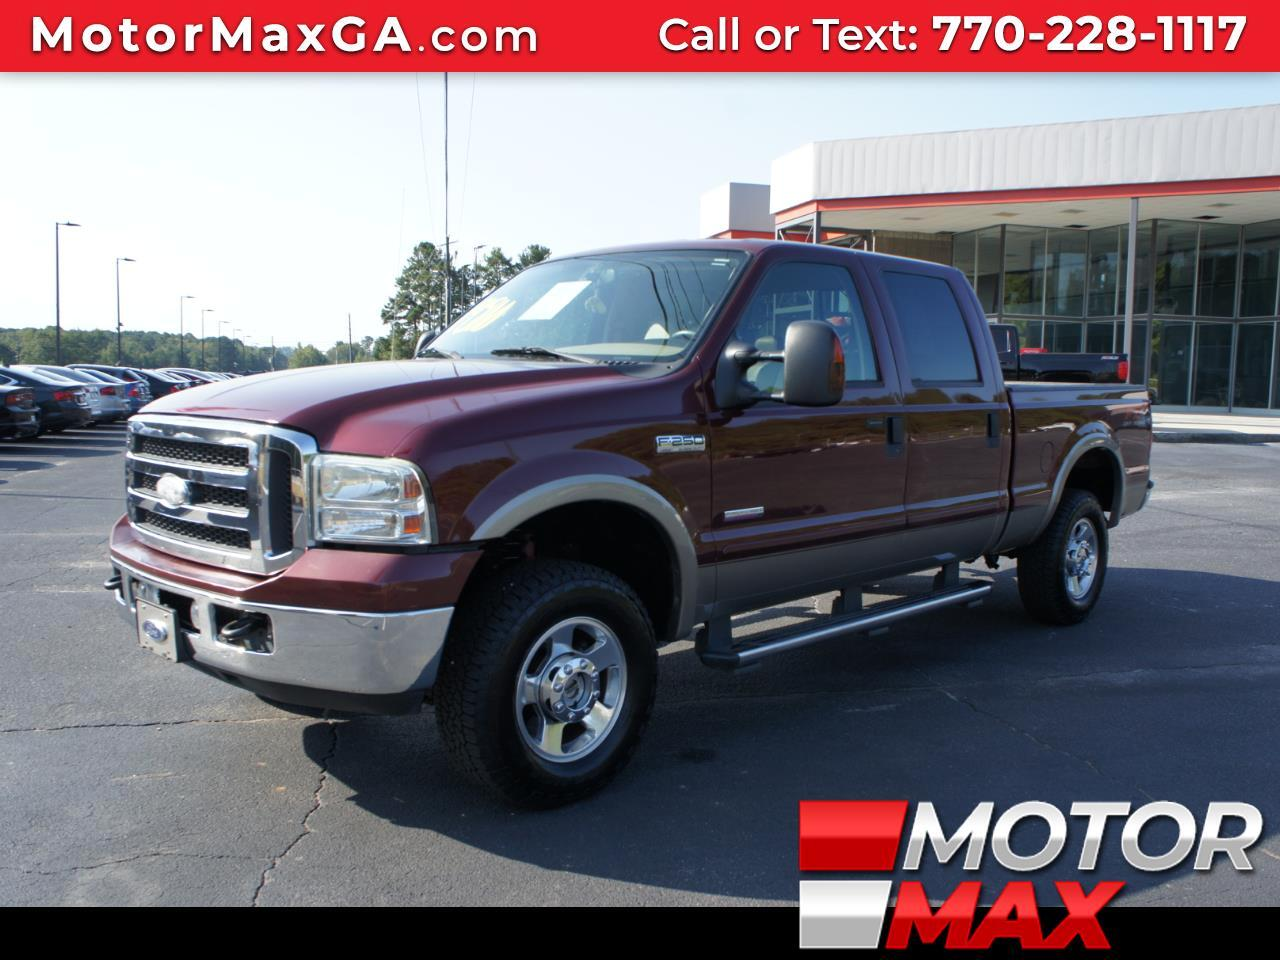 2005 Ford F-250 SD Lariat 4WD Diesel FX4 OFF ROAD